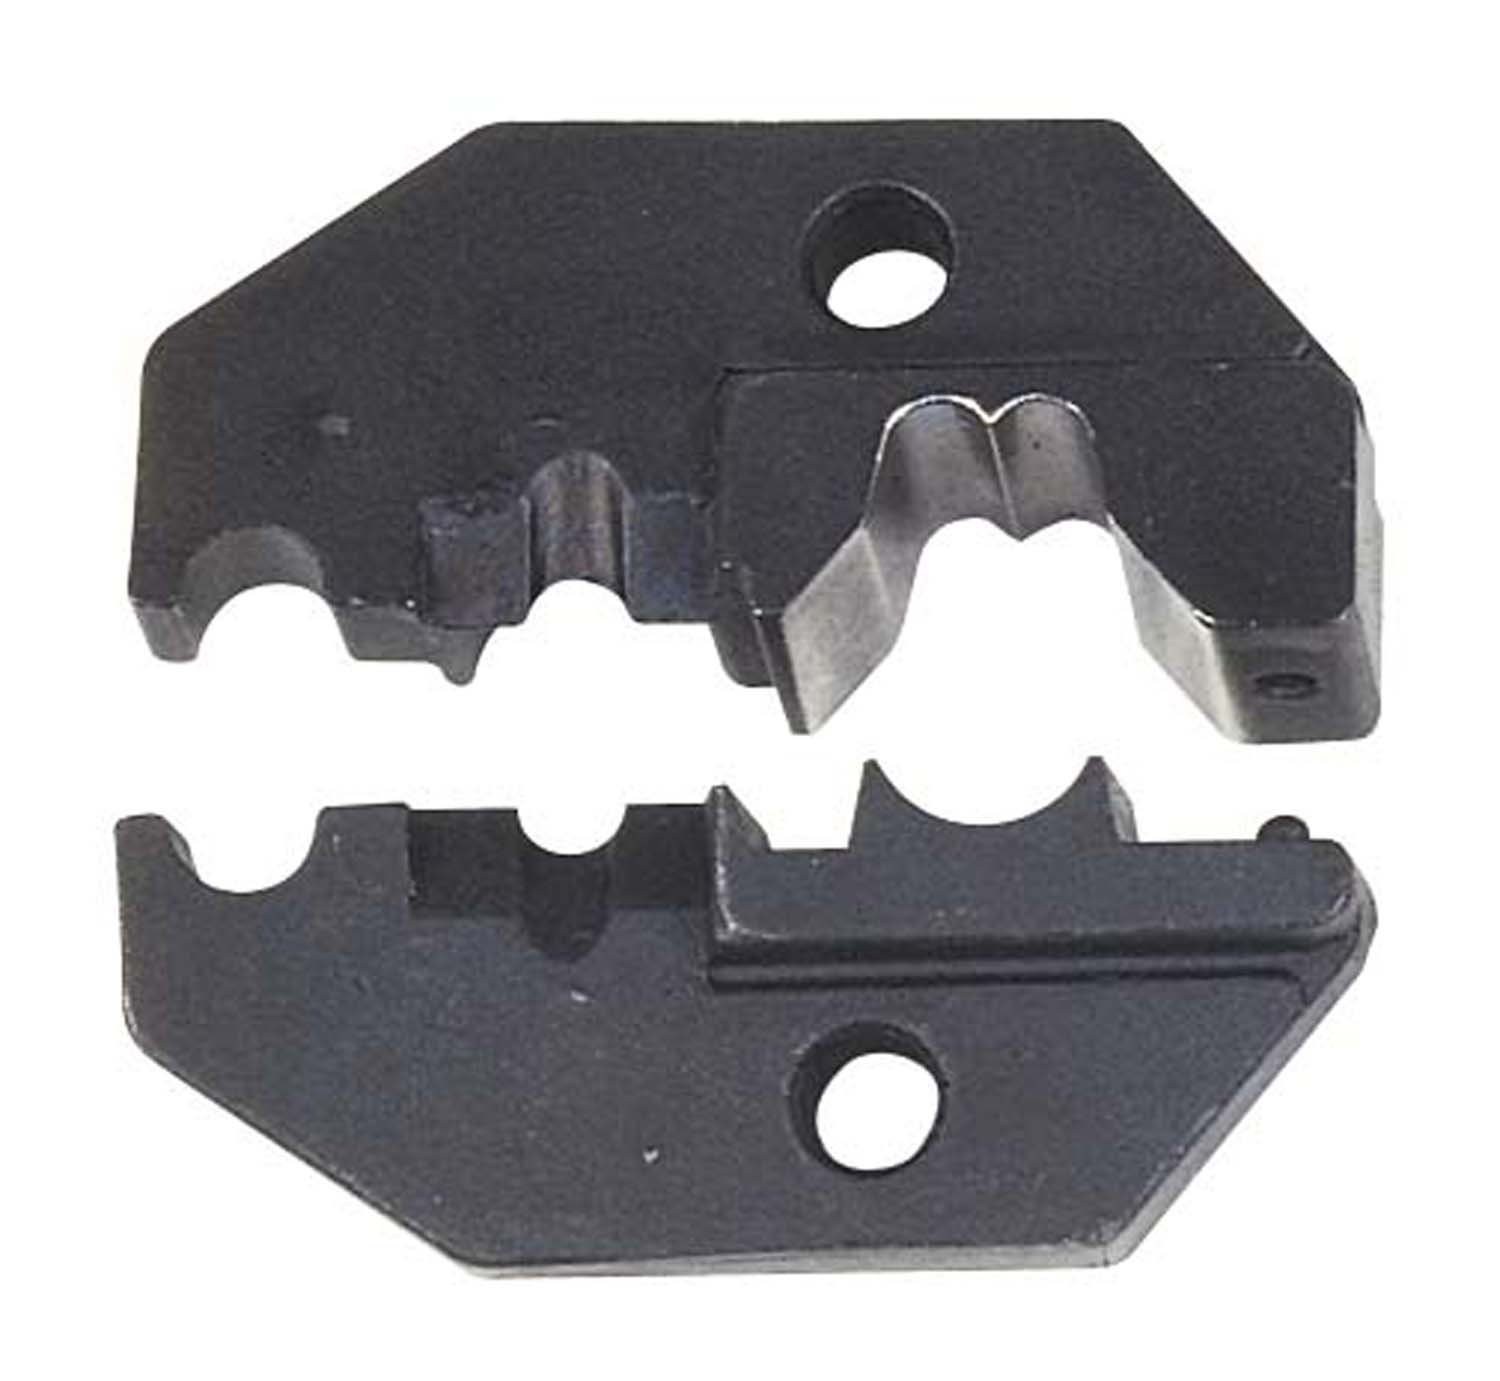 Msd 3508 Plug Wire Crimp Jaws Replacement Part For Pn